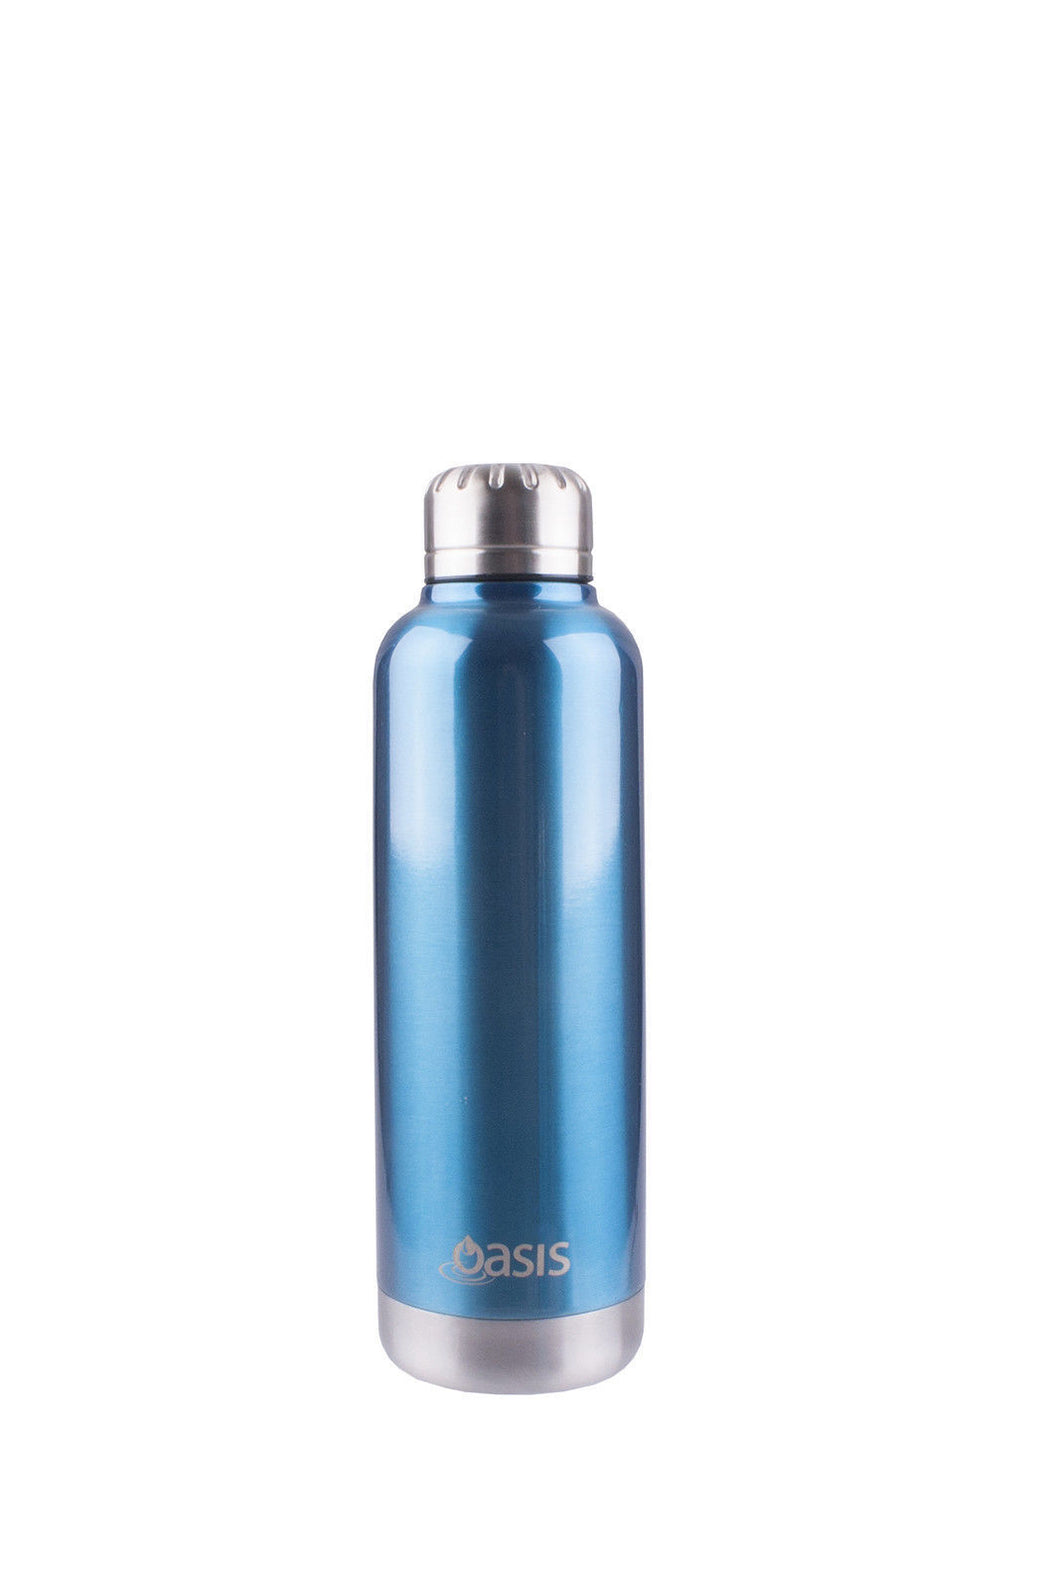 Oasis Canteen Stainless Steel Double Wall Insulated Water Bottle 500ml-Aqua